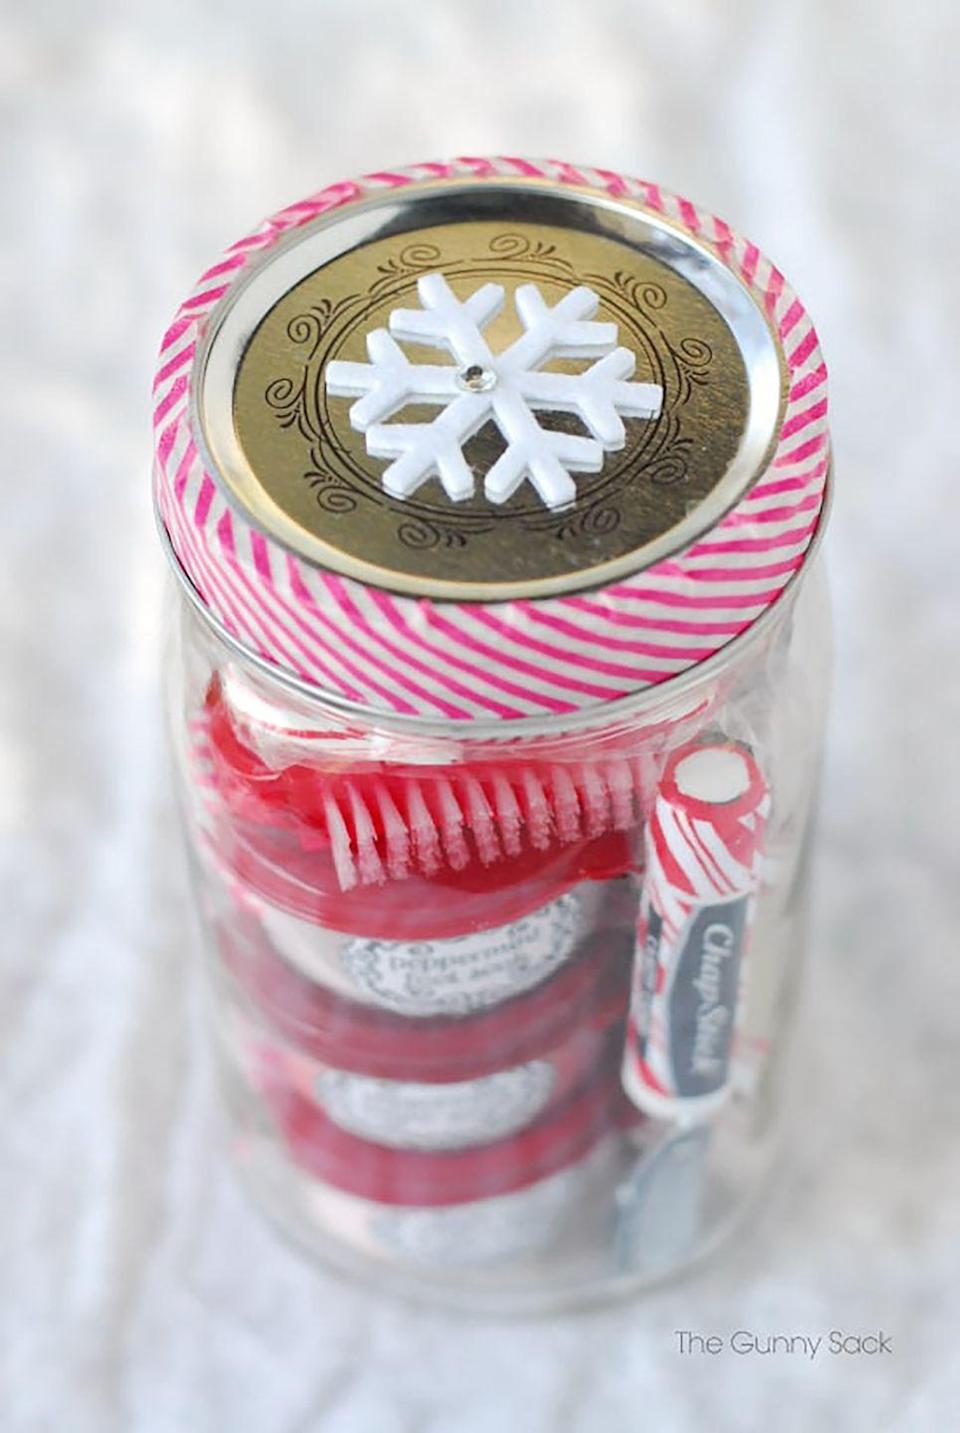 """<p>For an easy-to-make Christmas gift, blogger Tonia made peppermint-themed presents by filling Mason jars with handmade peppermint spa products, like body butter, sugar scrub, and foot soak.</p><p><strong>Get the tutorial at <a href=""""http://www.thegunnysack.com/2013/11/peppermint-pampering-gifts-in-jars-for-homemade-christmas-gifts.html"""" rel=""""nofollow noopener"""" target=""""_blank"""" data-ylk=""""slk:The Gunny Sack"""" class=""""link rapid-noclick-resp"""">The Gunny Sack</a>.</strong></p><p><a class=""""link rapid-noclick-resp"""" href=""""https://www.amazon.com/Clear-Empty-Plastic-Cosmetic-Containers/dp/B00J7A4SAW/?tag=syn-yahoo-20&ascsubtag=%5Bartid%7C10050.g.2132%5Bsrc%7Cyahoo-us"""" rel=""""nofollow noopener"""" target=""""_blank"""" data-ylk=""""slk:SHOP PLASTIC JARS"""">SHOP PLASTIC JARS</a></p>"""